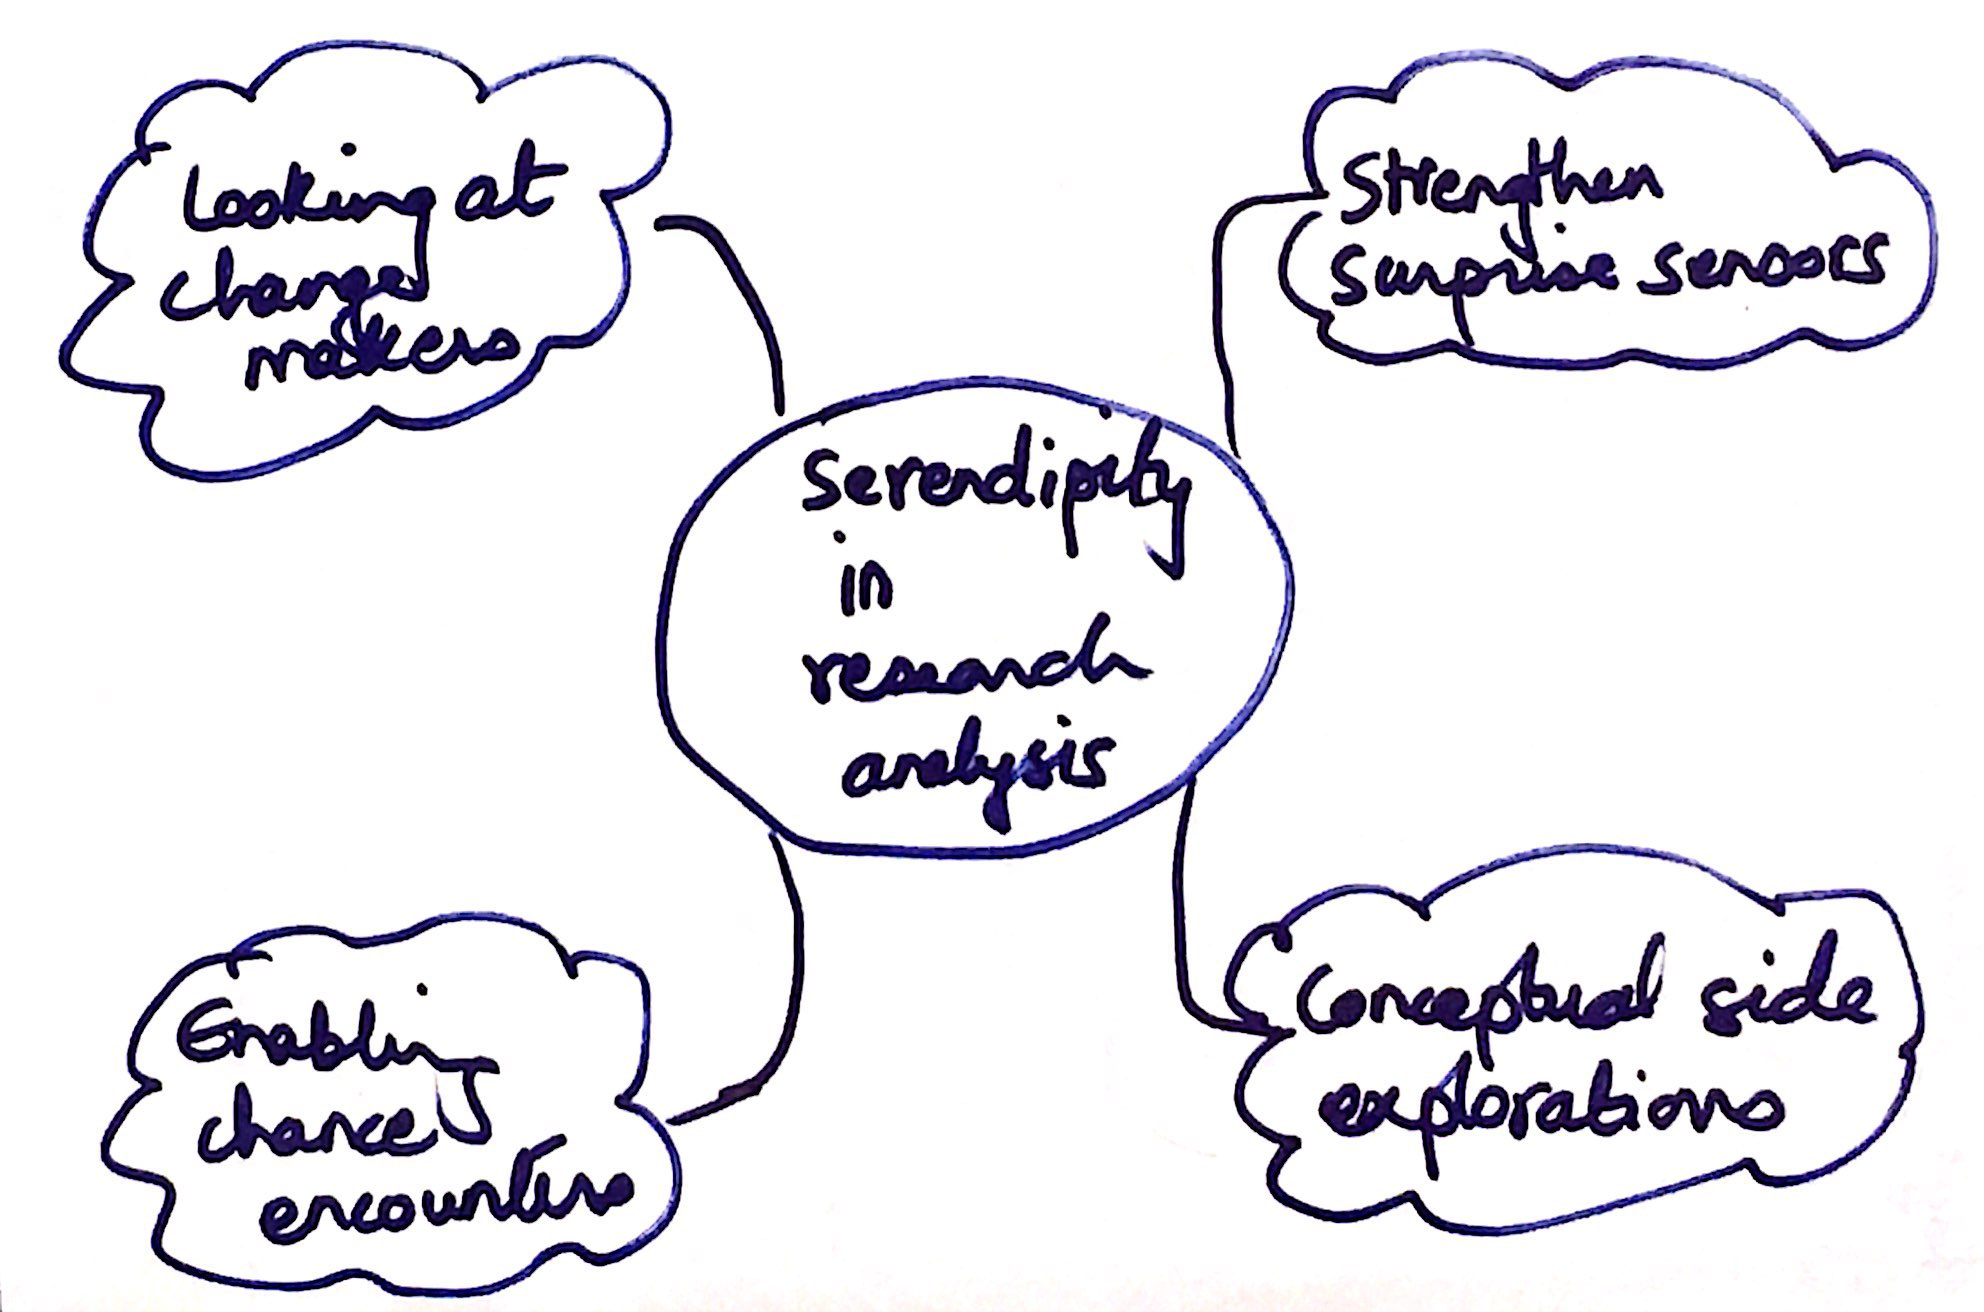 Serendipity and qual analysis